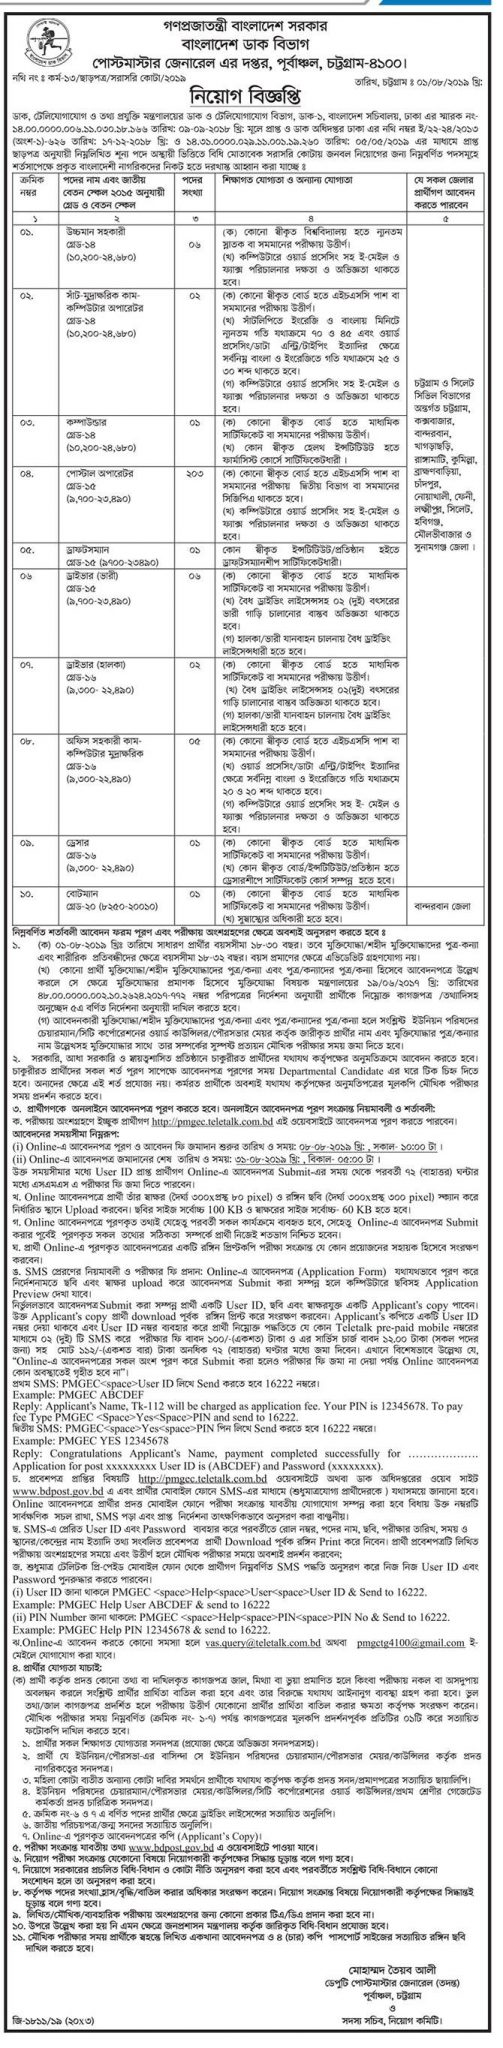 Bangladesh Post Office Job Circular 2019